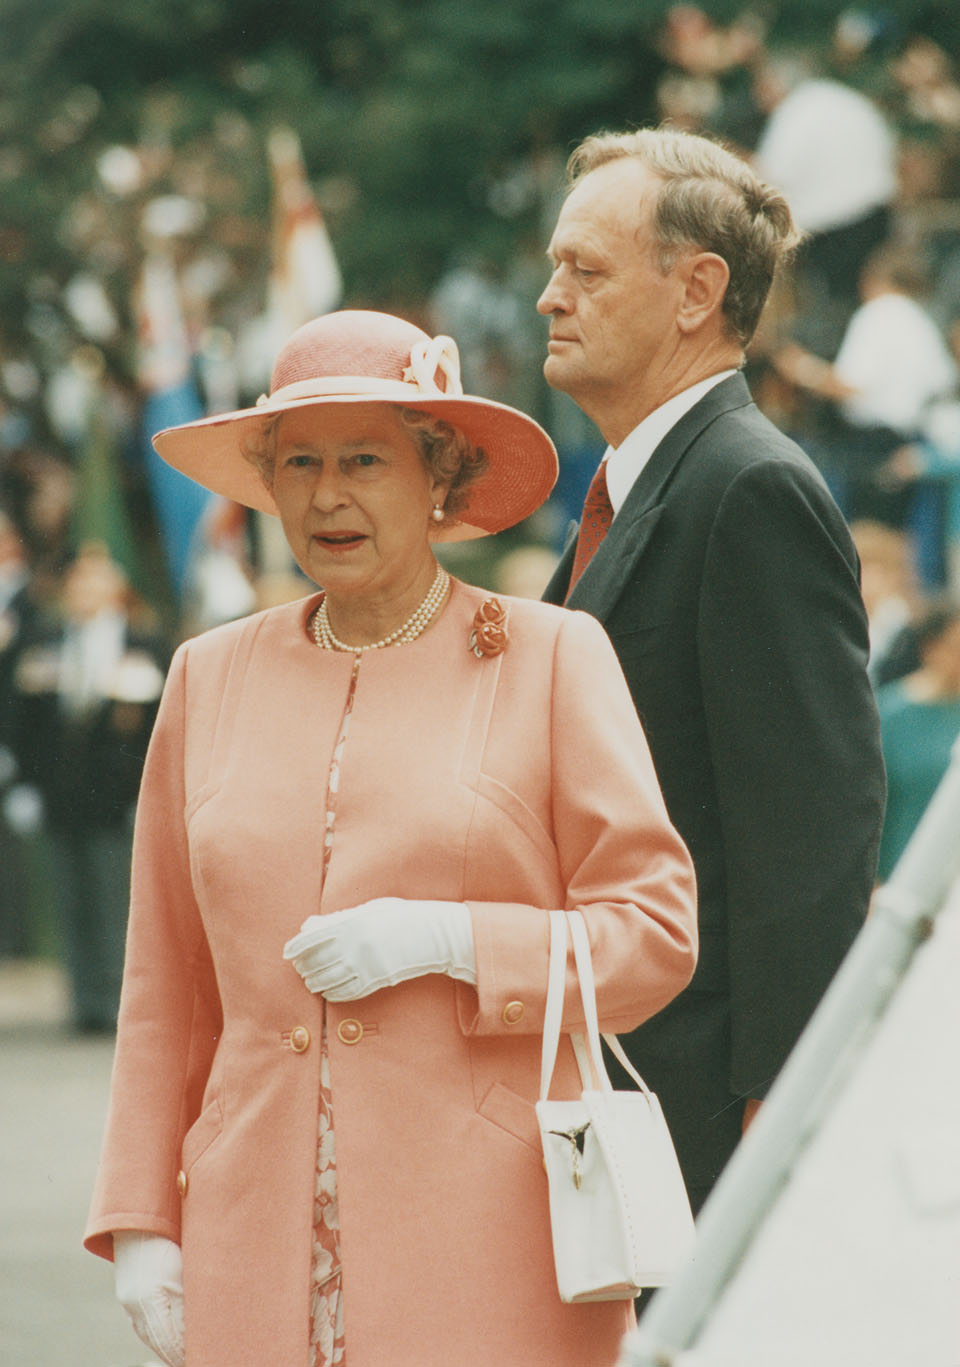 Queen Elizabeth with Prime Minister Jean Chretien at the Grand Parade, Halifax